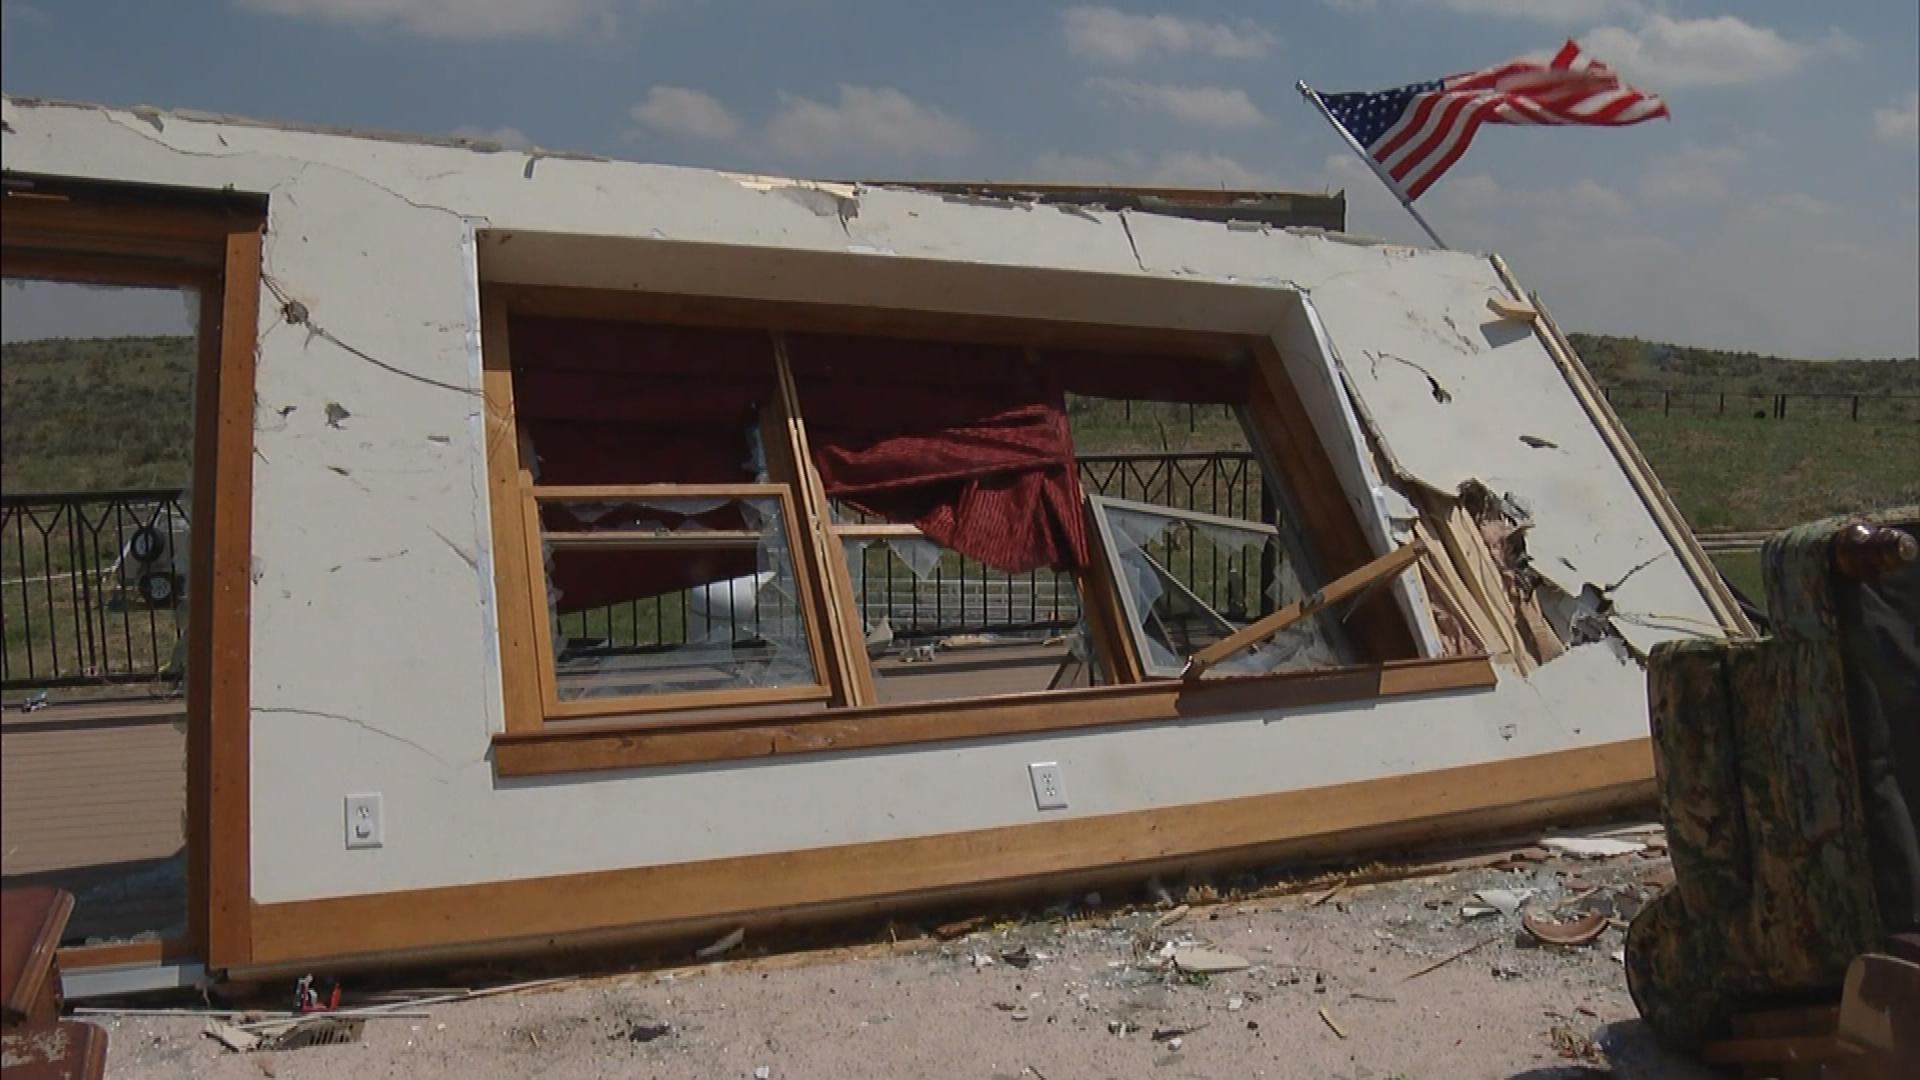 The damage to the house north of Wray (credit: CBS)